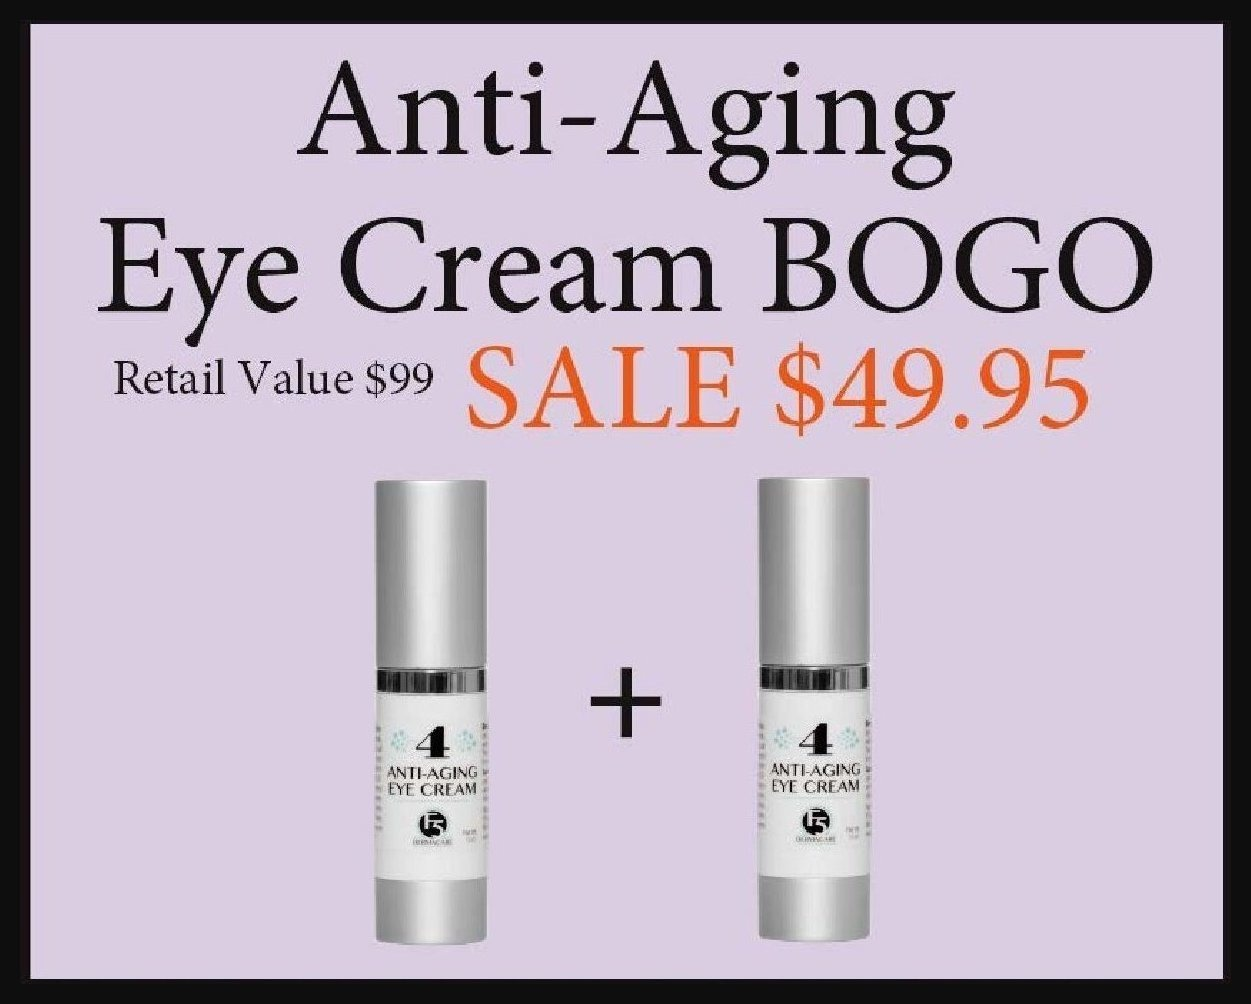 BOGO Anti-Aging Eye Cream